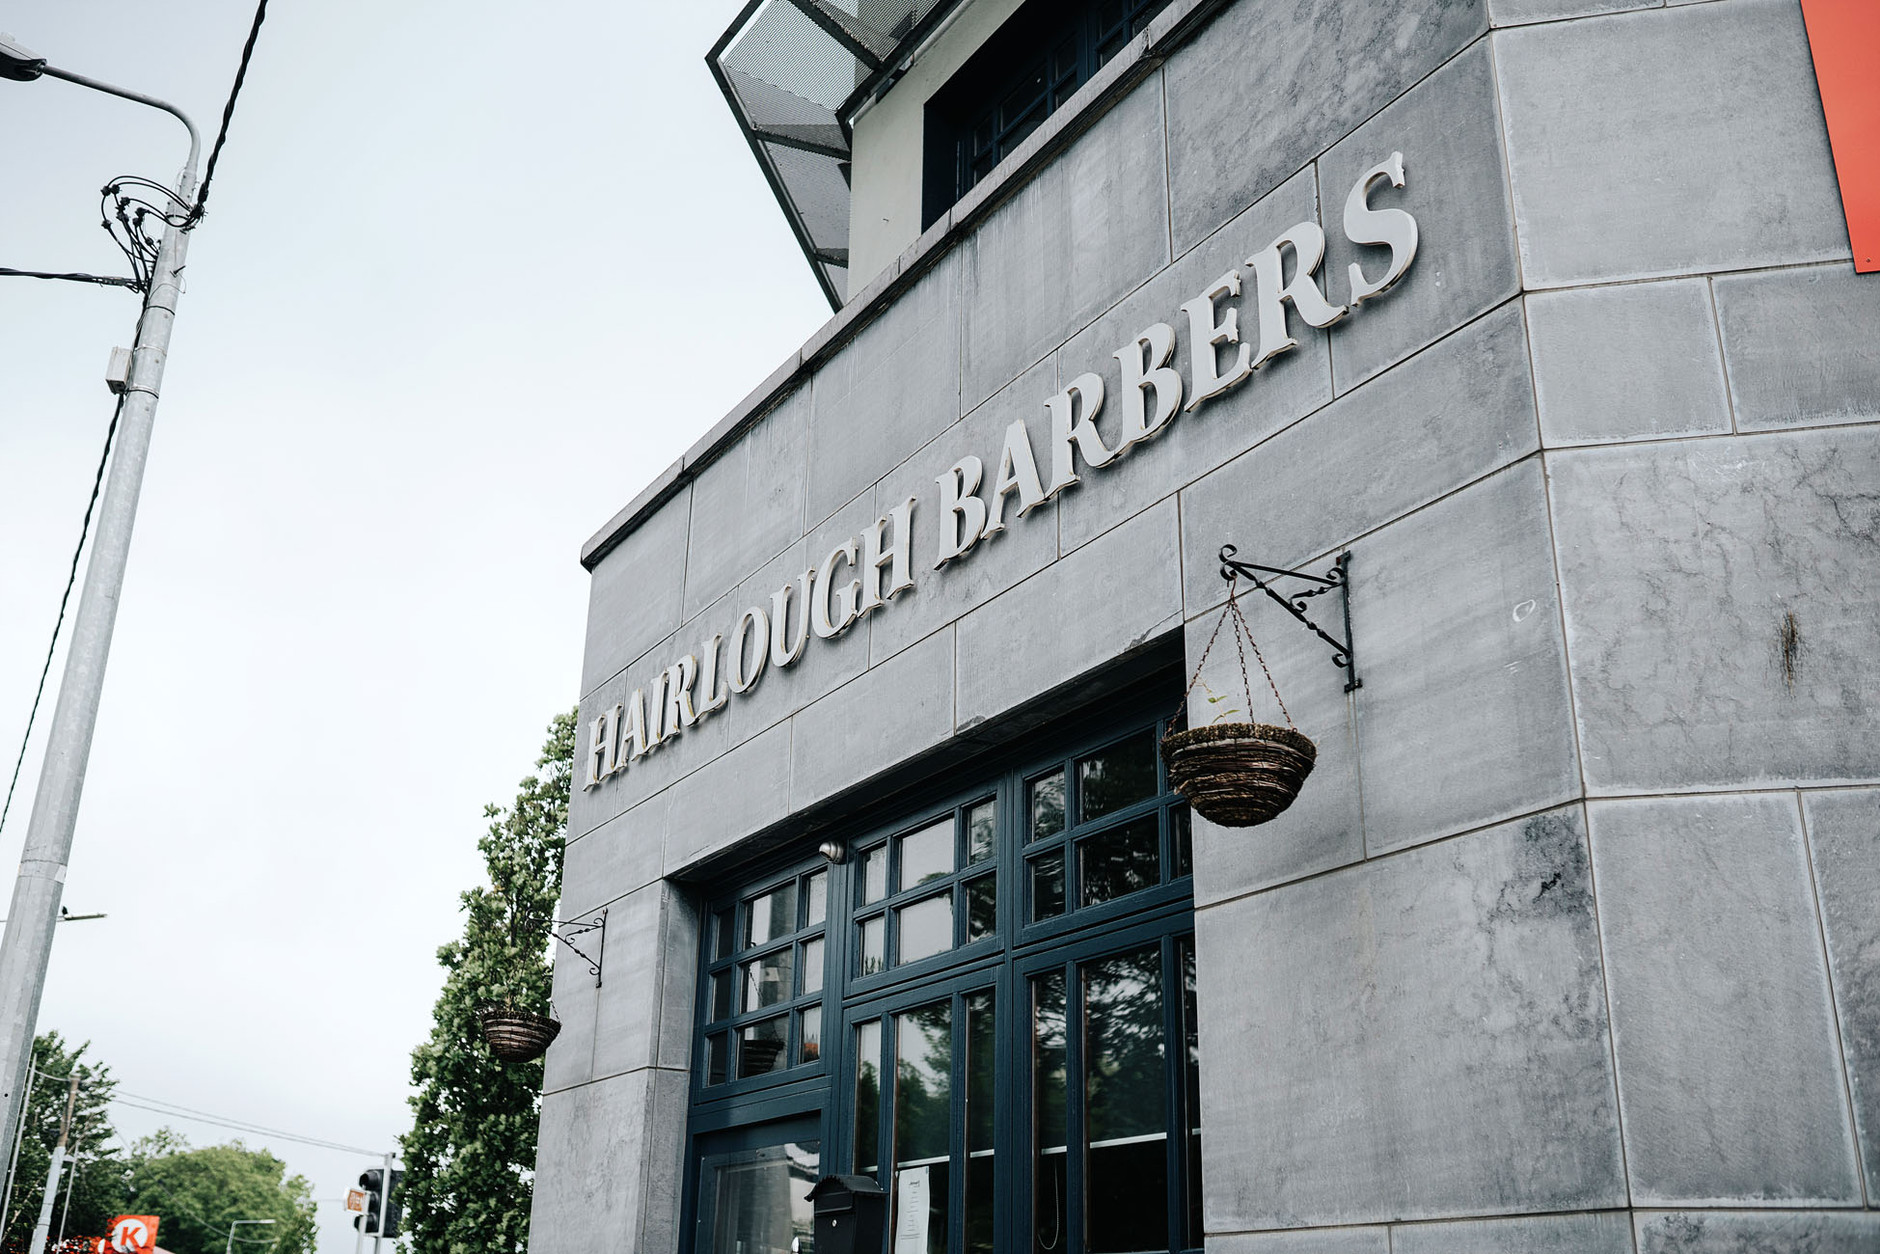 Hairlough Barbers Building in Dublin